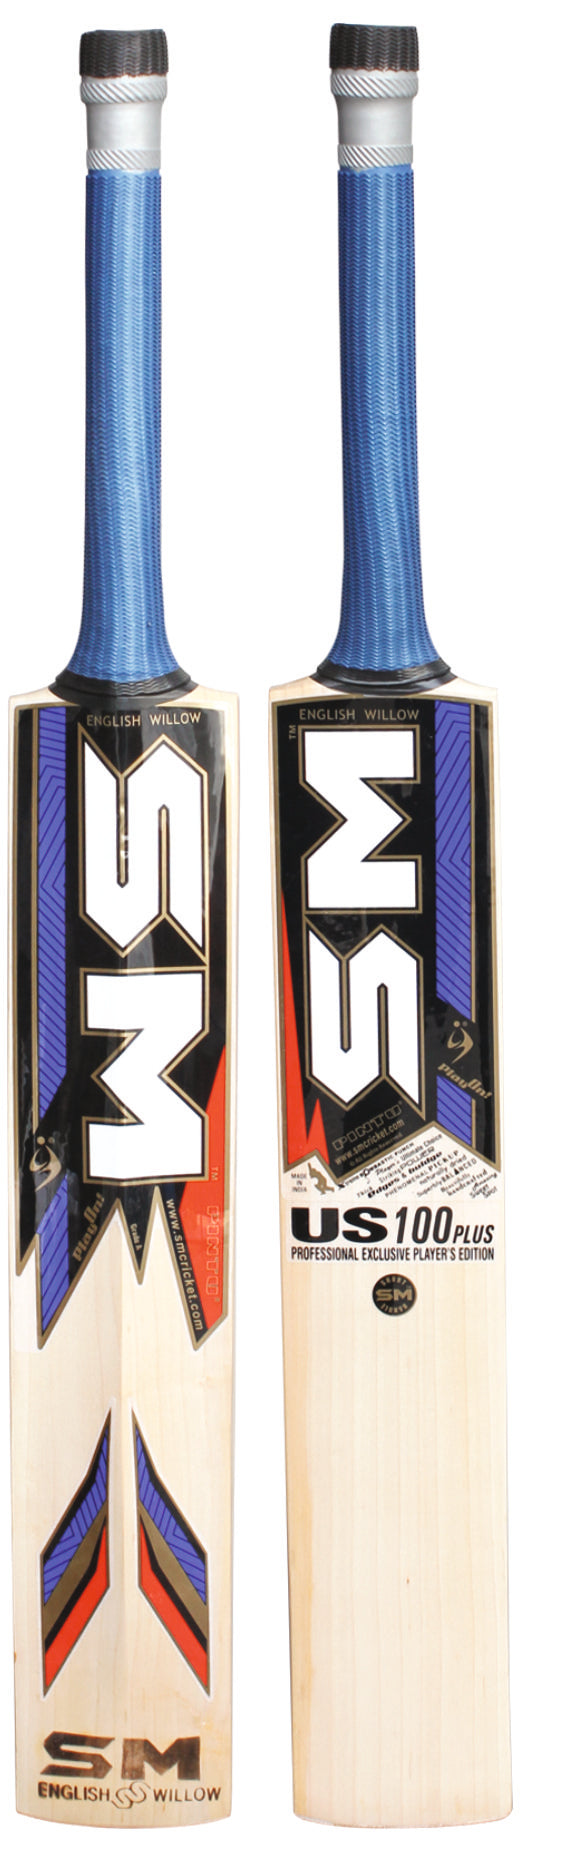 SM US 100 Plus Junior Bat